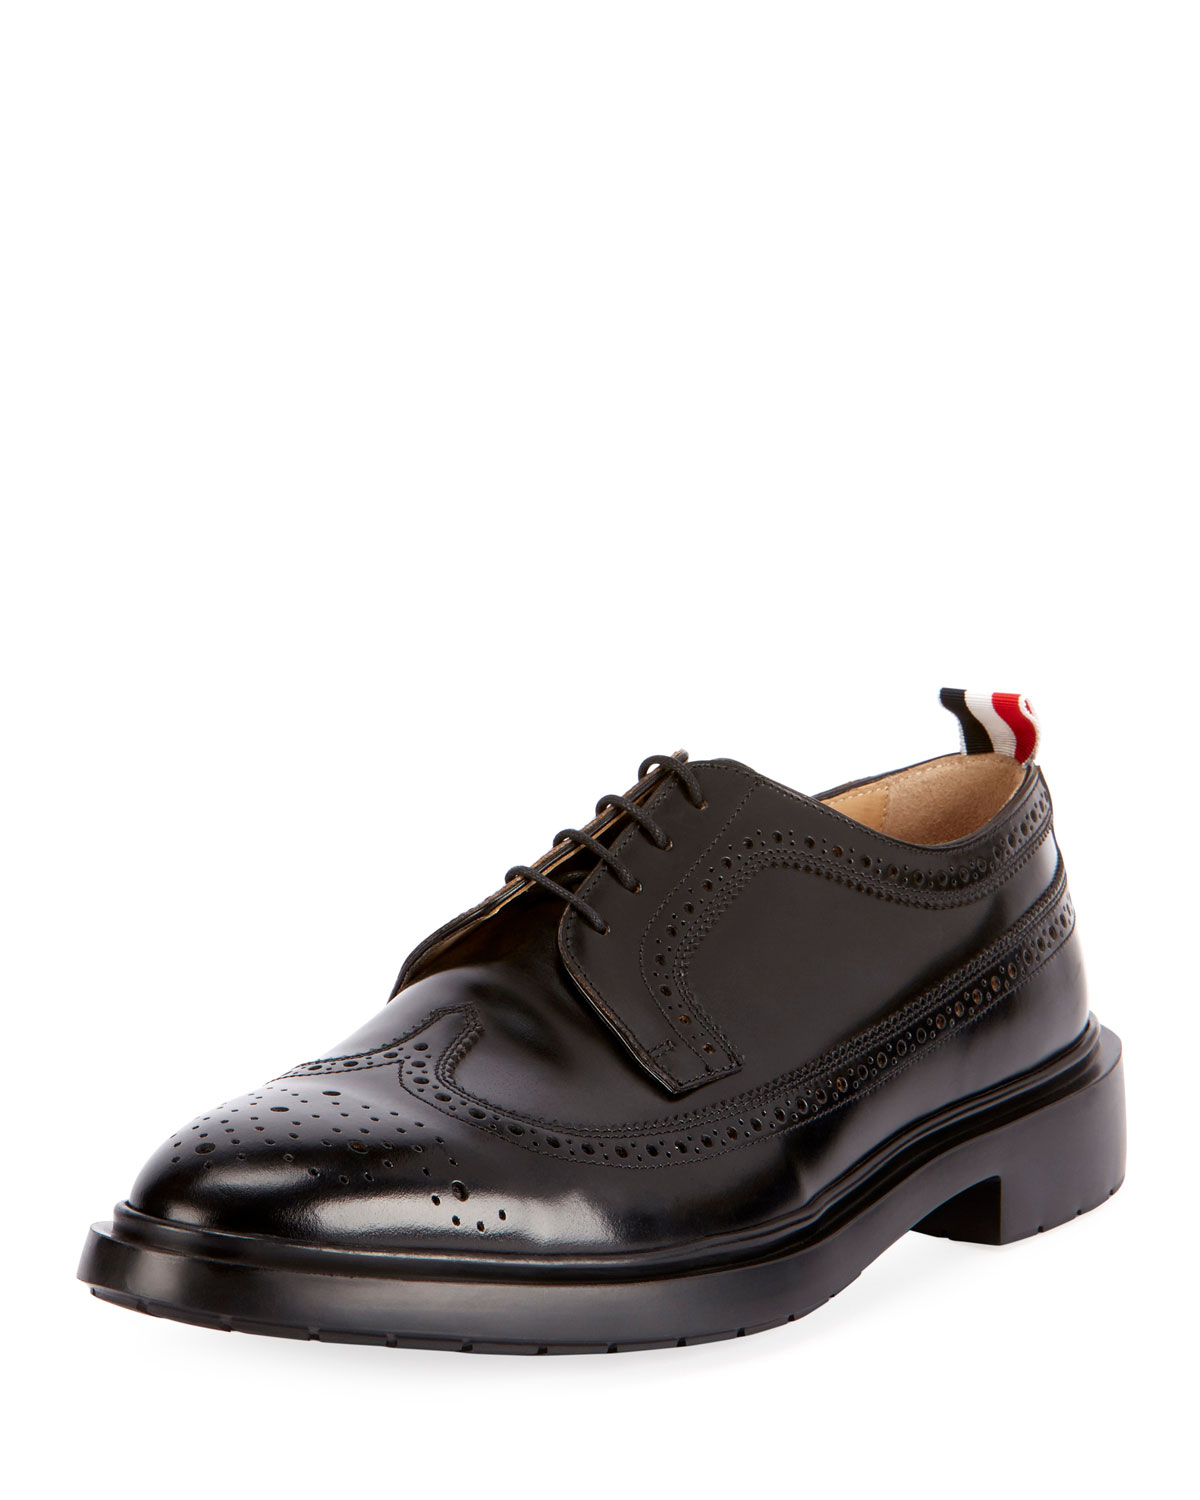 Men's Classic Long Wing-Tip Brogue Oxford Shoes